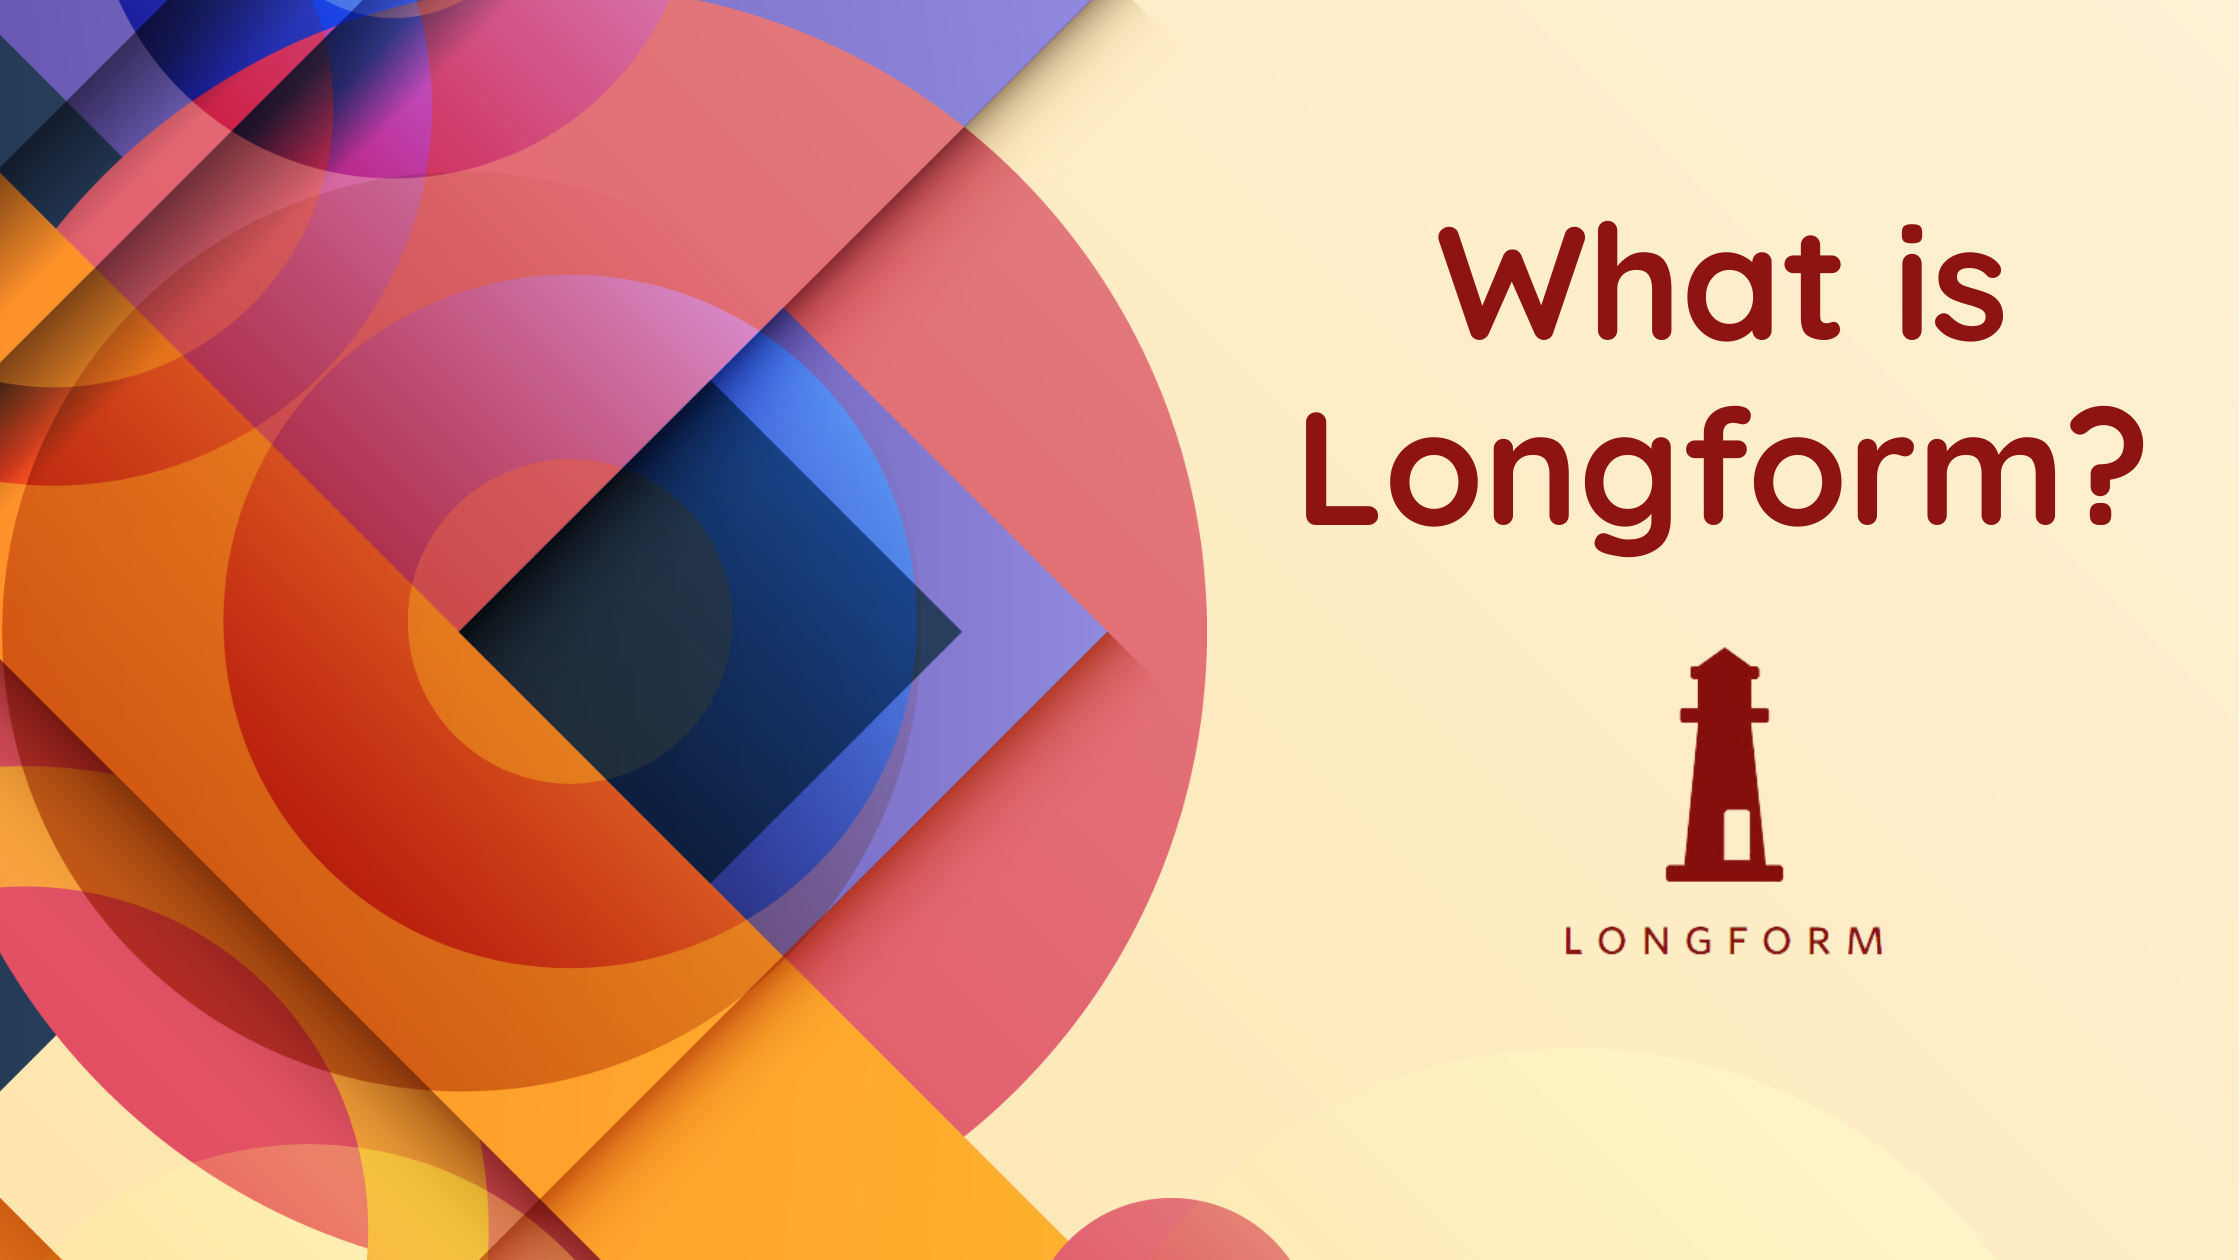 longform, what is longform, longform.org, long form, longform podcast, longform app, longform platform